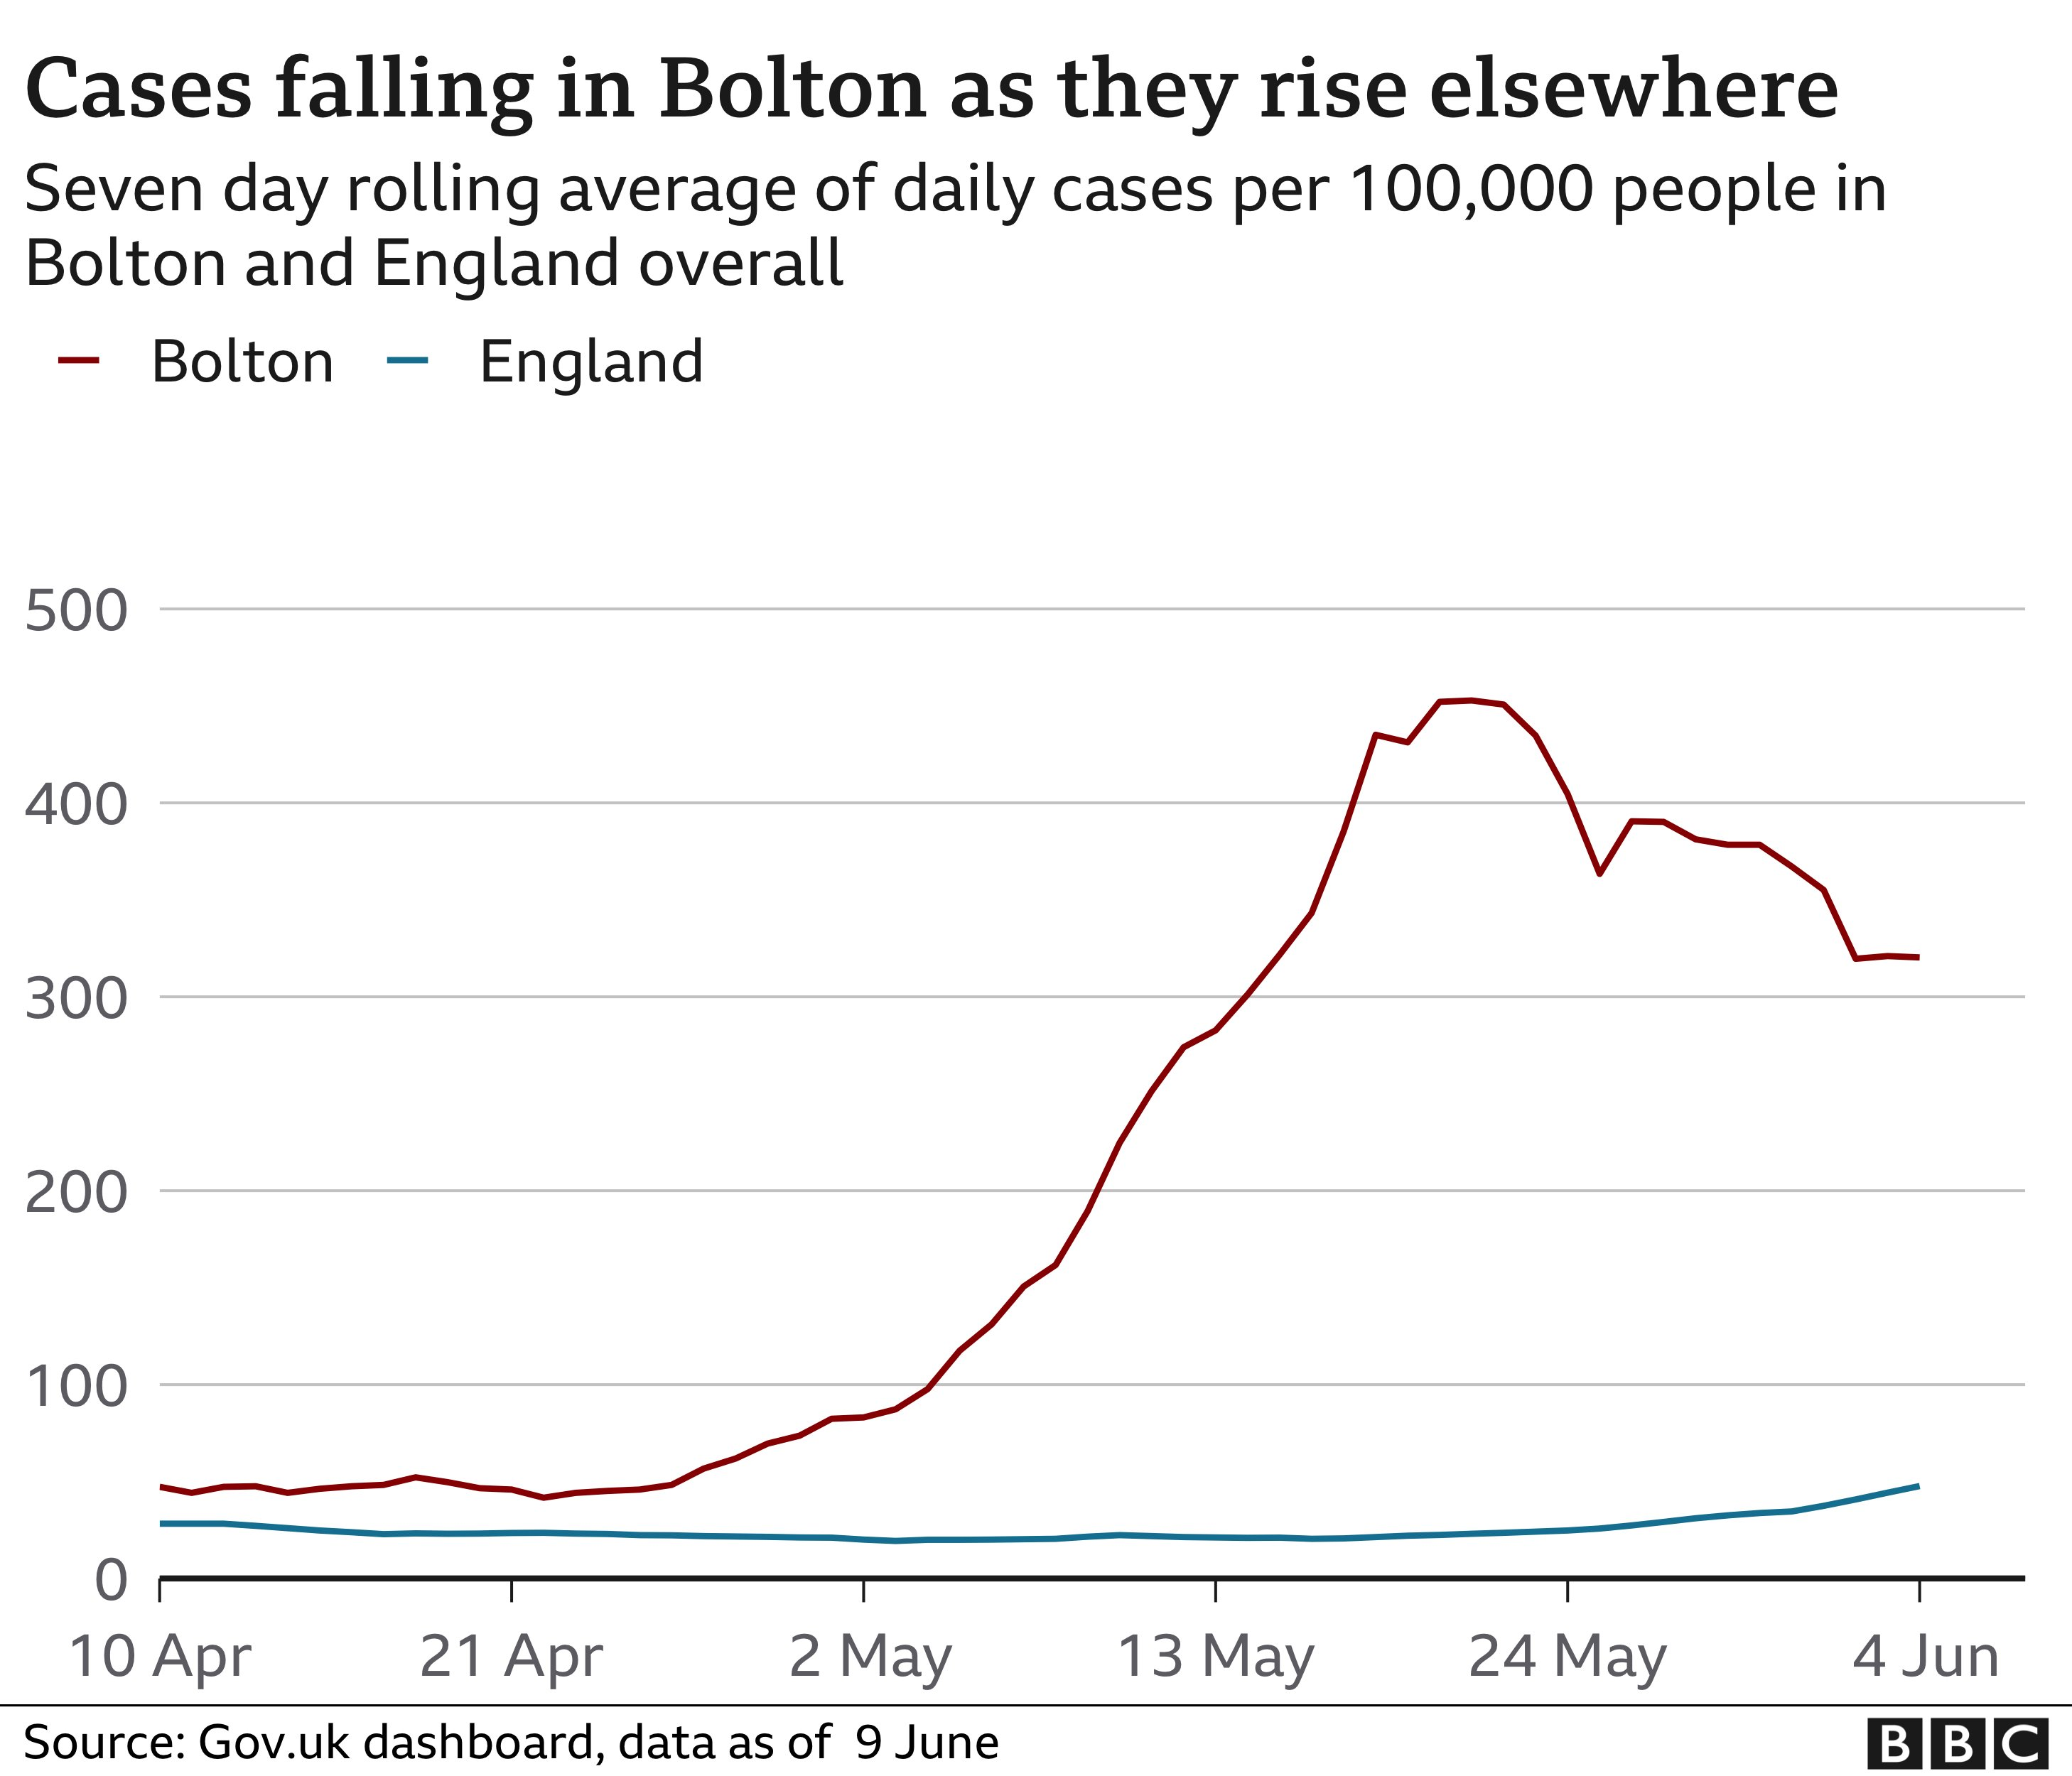 Graph showing falling cases in Bolton compared to England average